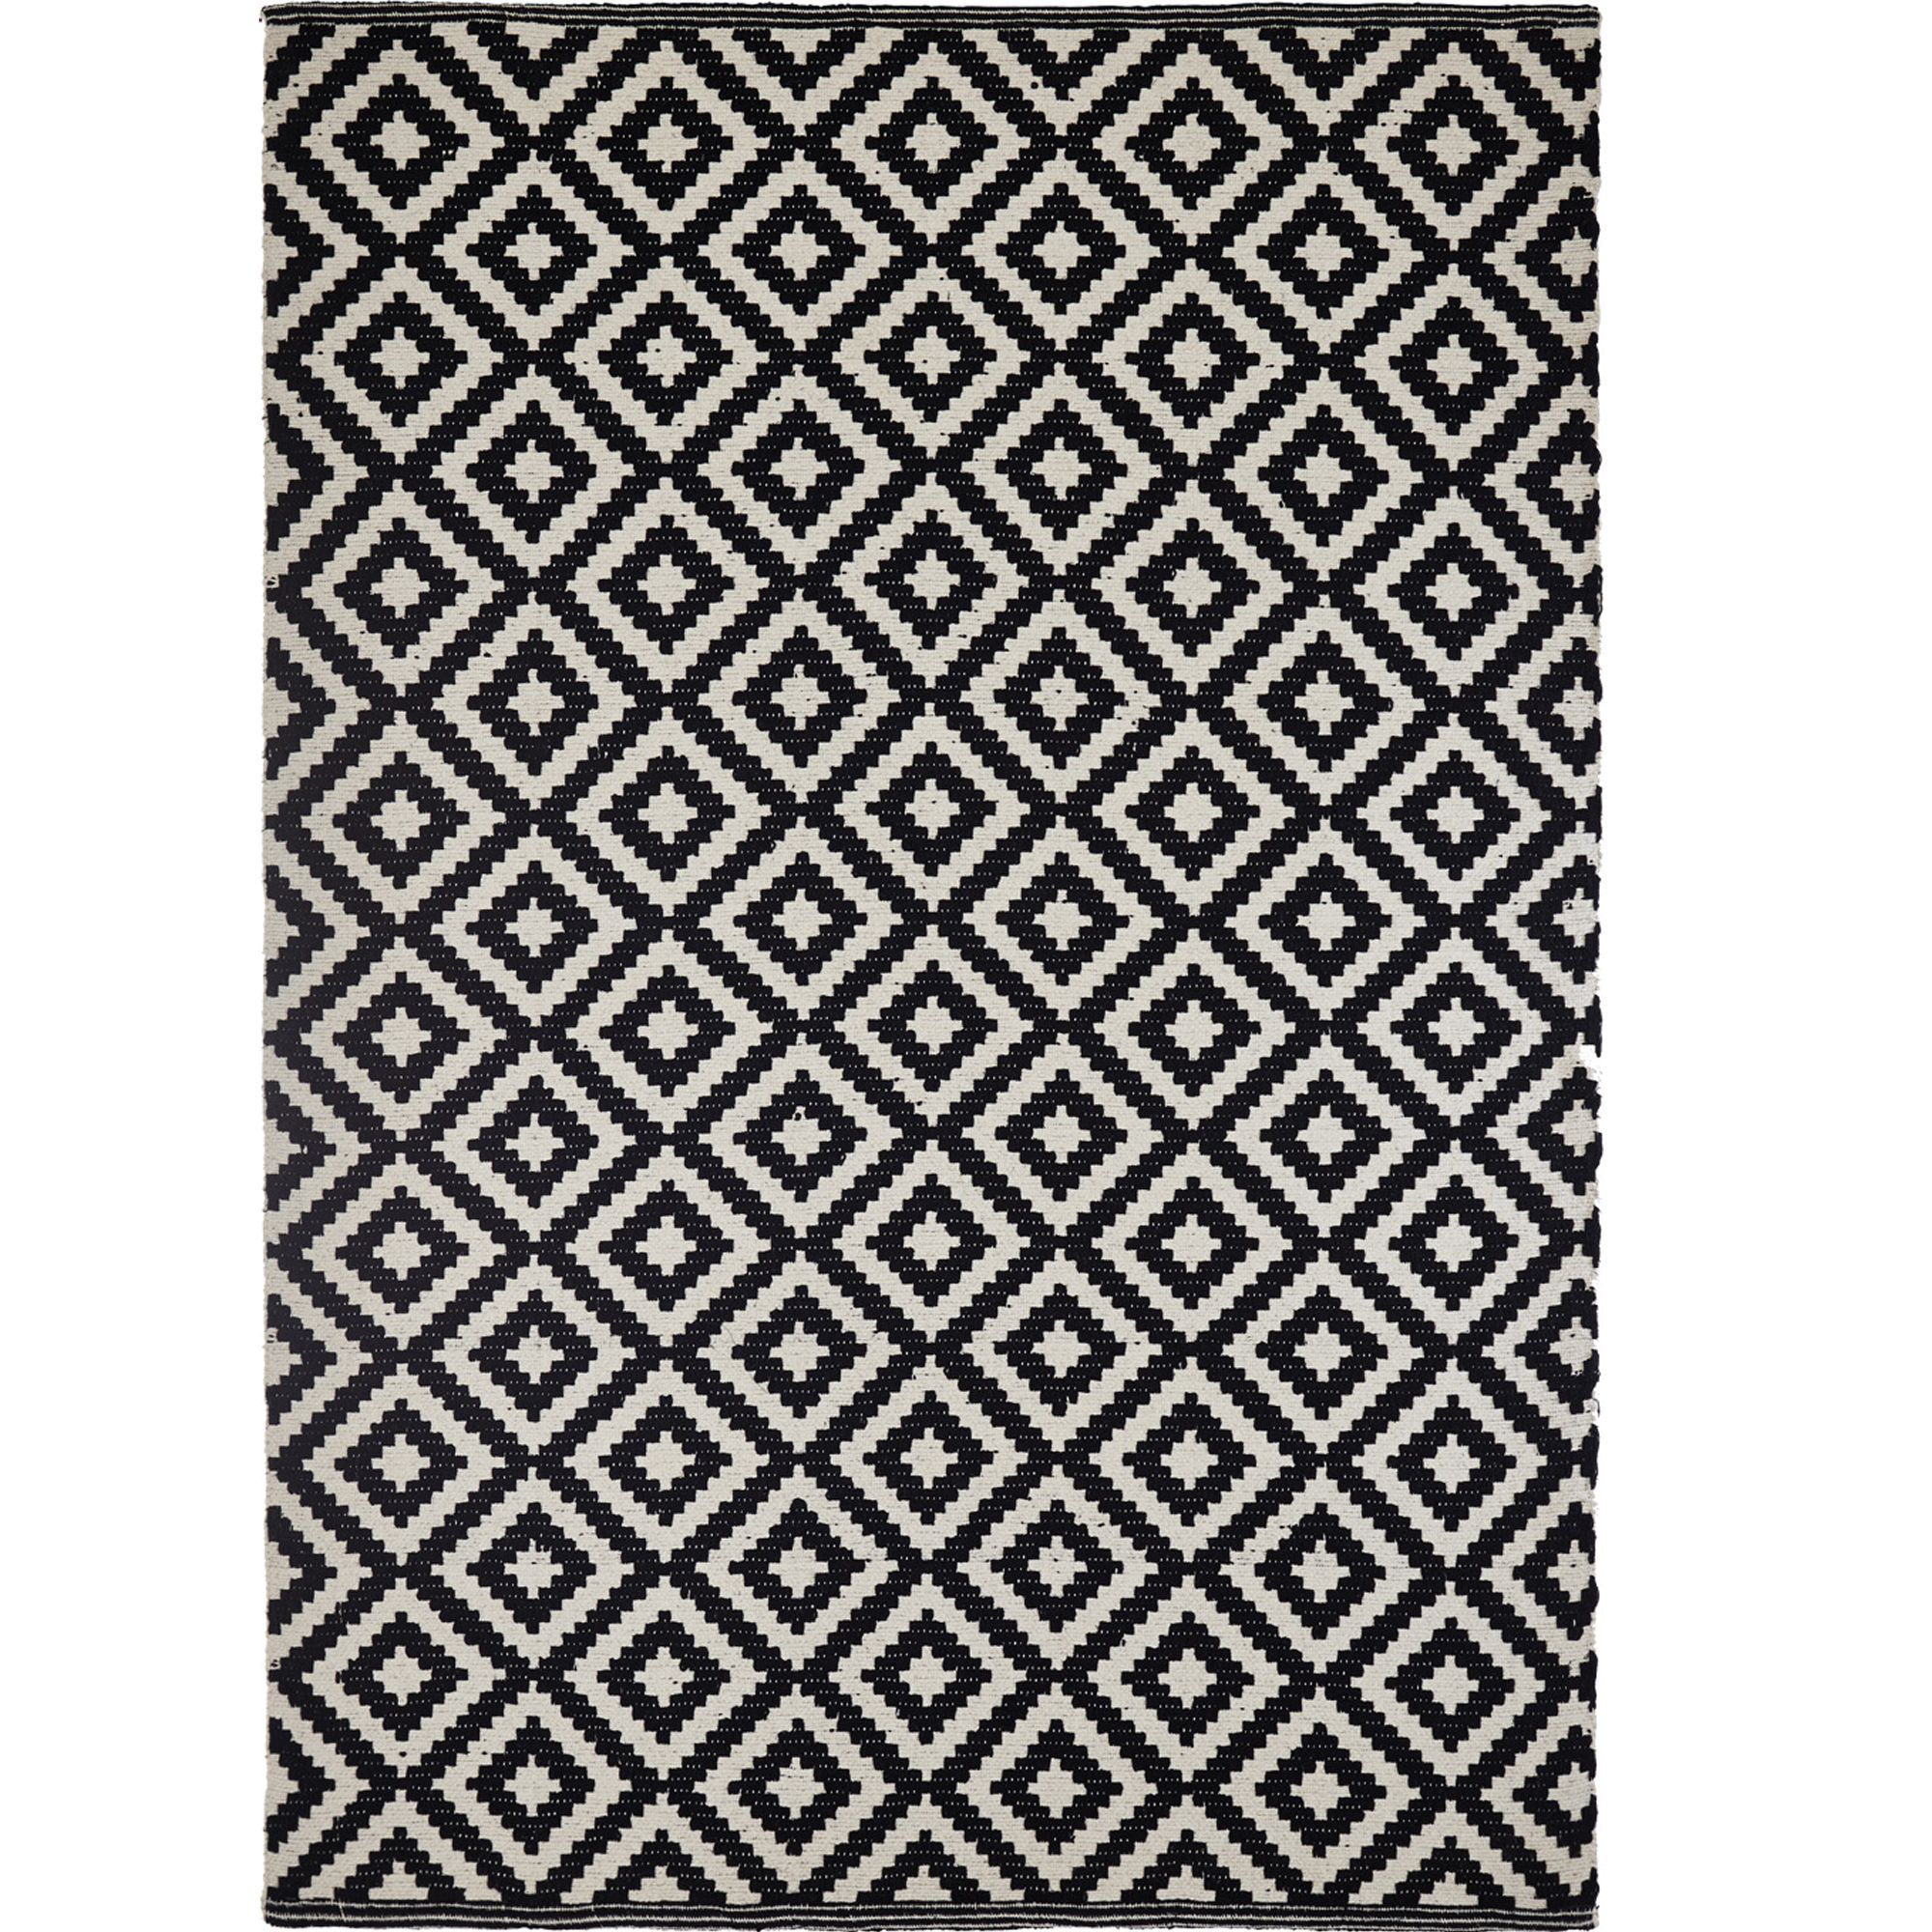 Colours Harrietta Black Amp White Geometric Rug L 2 3m W 1